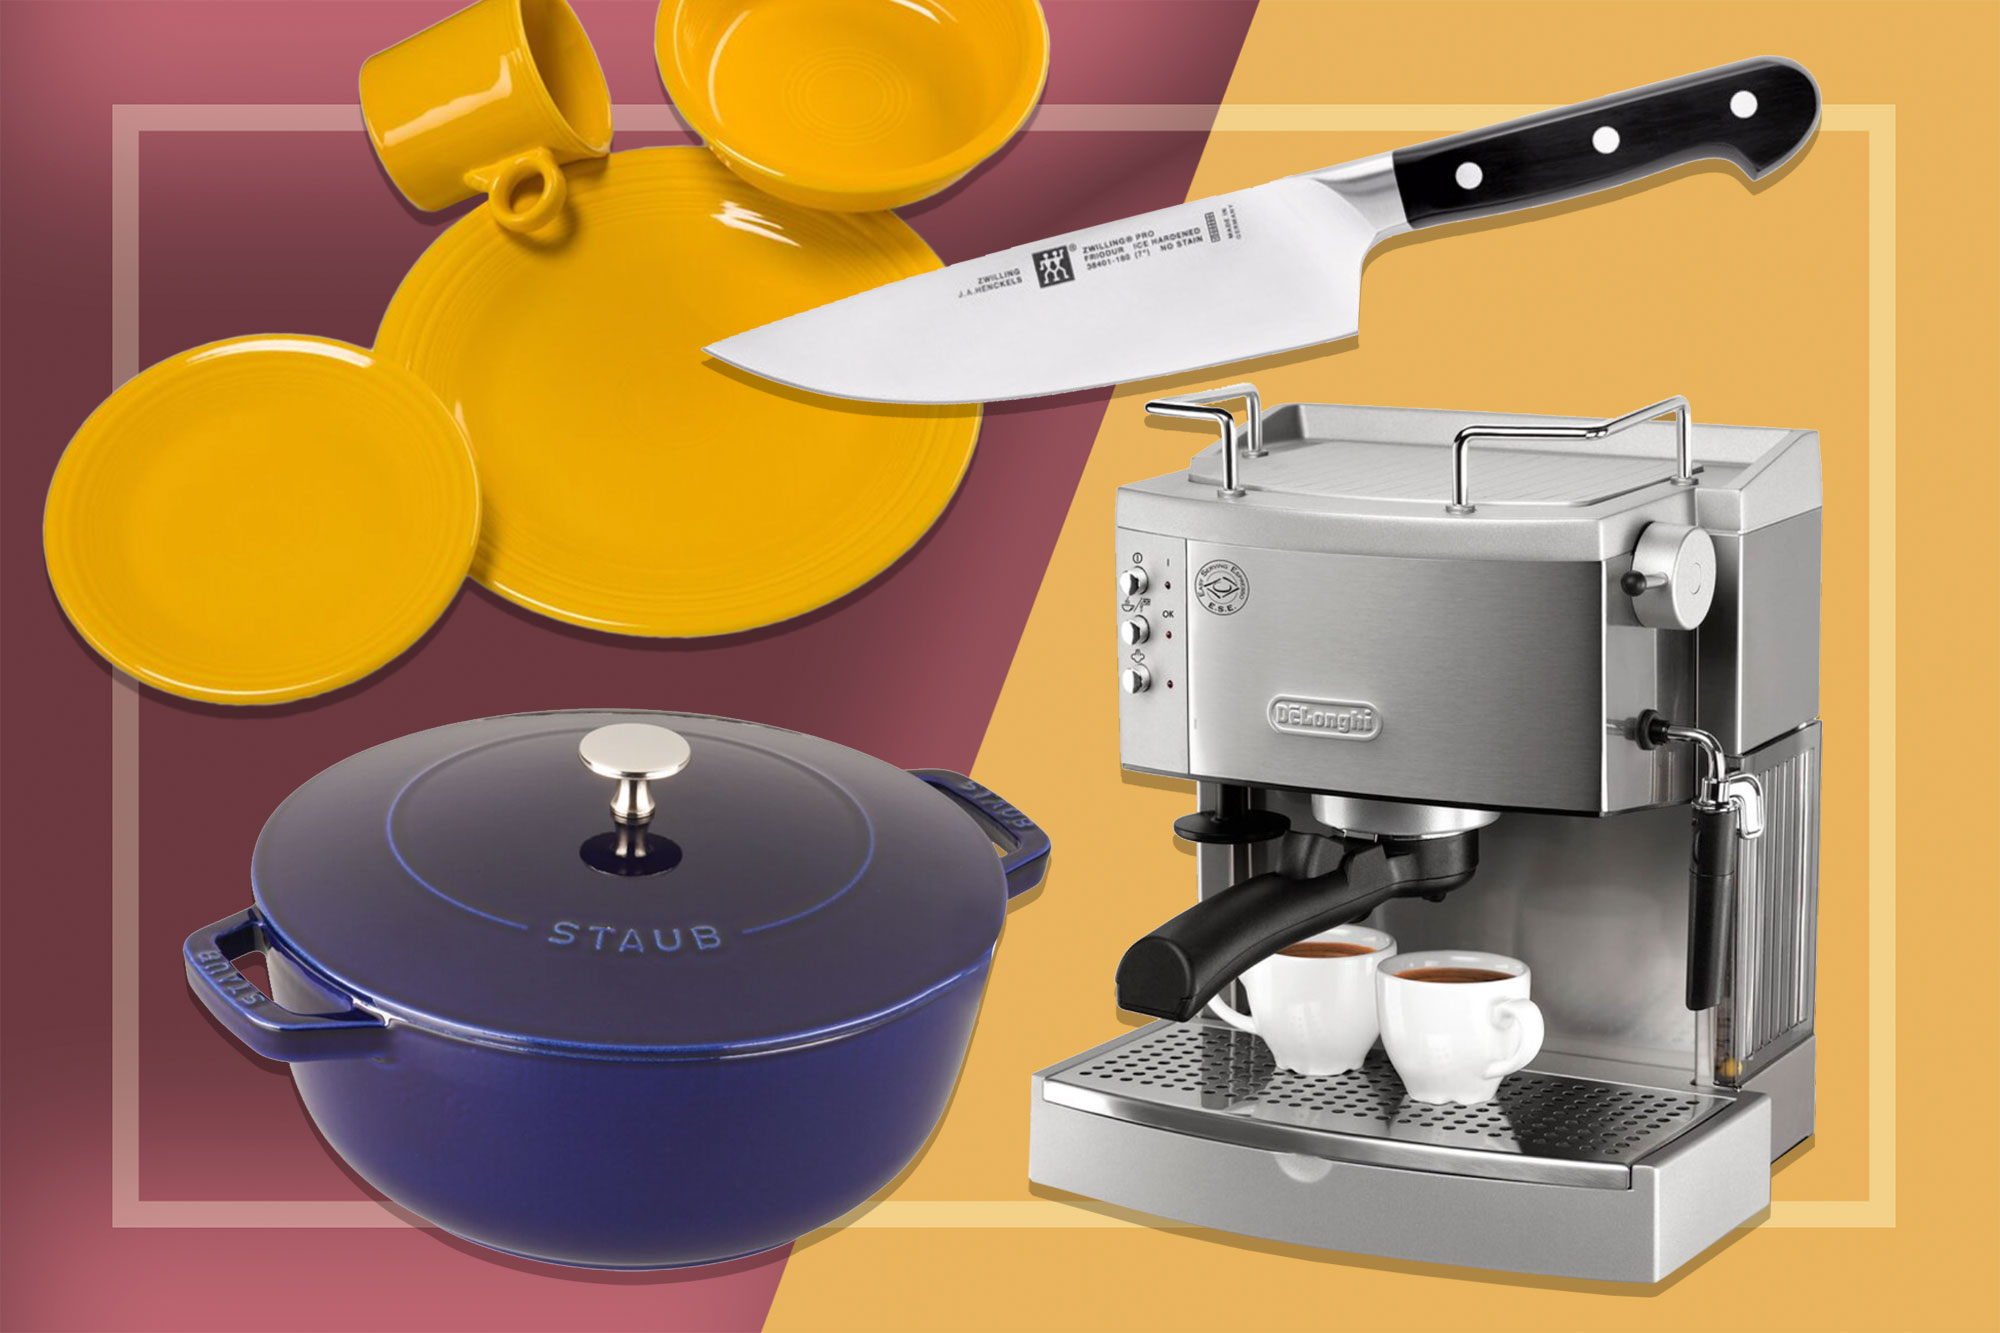 Wayfair Sale Items: Fiesta Plates, Knife, Espresso Machine, Staub Dutch Oven